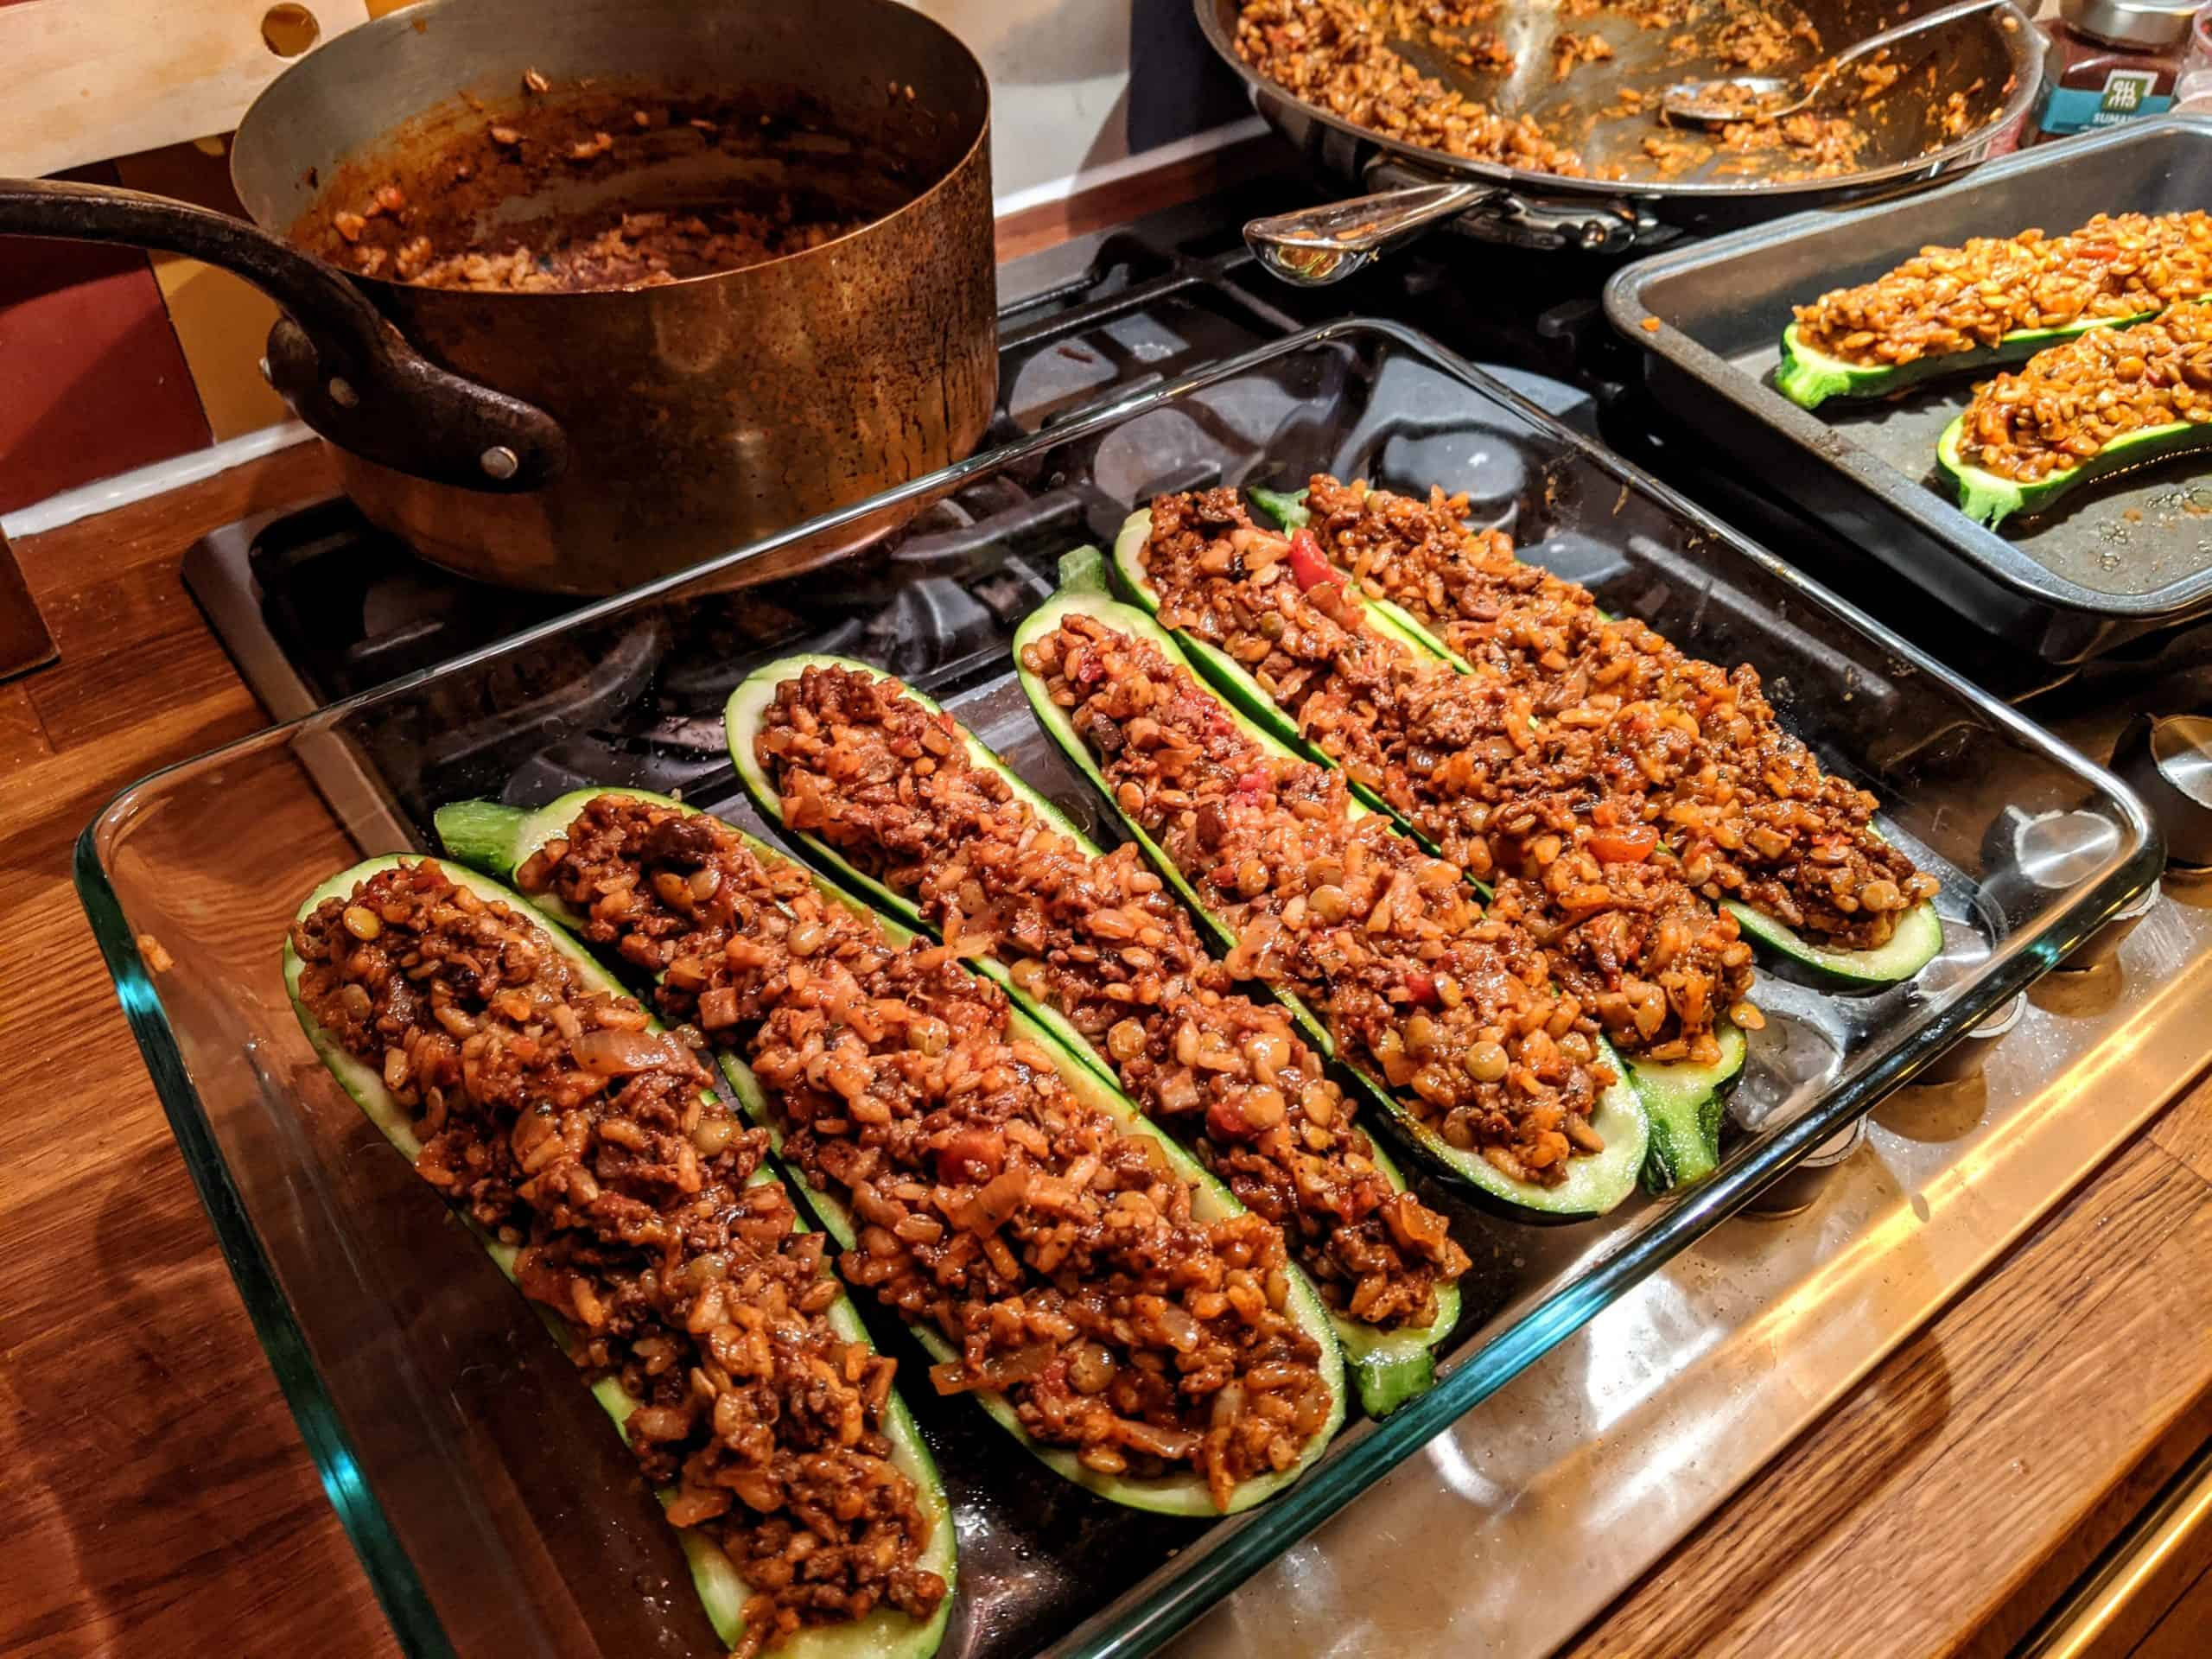 zucchini boats stuffed with beef and vegan with mushrooms and lentils.